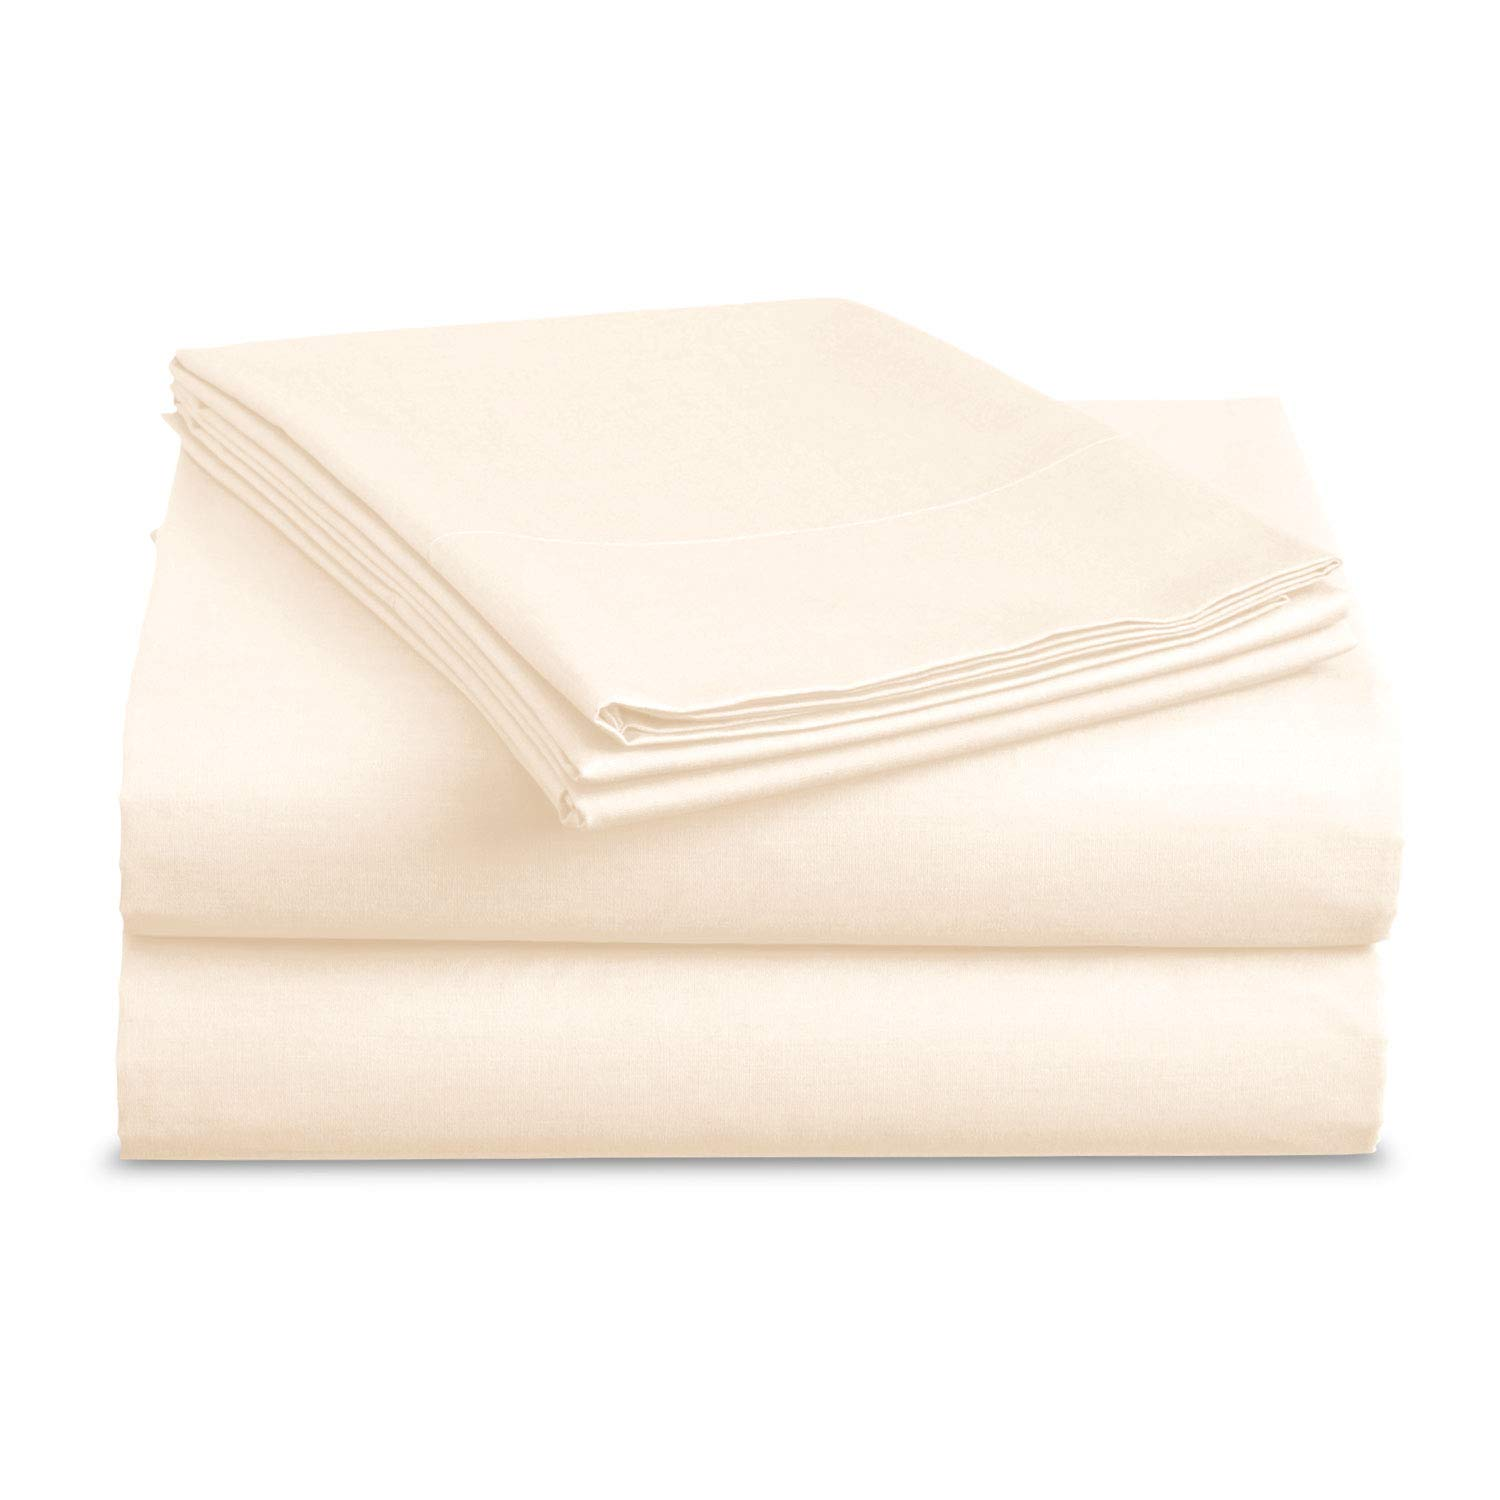 BASIC CHOICE Bed Sheet Set - Brushed Microfiber 2000 Bedding - Wrinkle, Fade, Stain Resistant - Hypoallergenic - 3 Piece - Unique Presents for Family (Twin, Ivory)